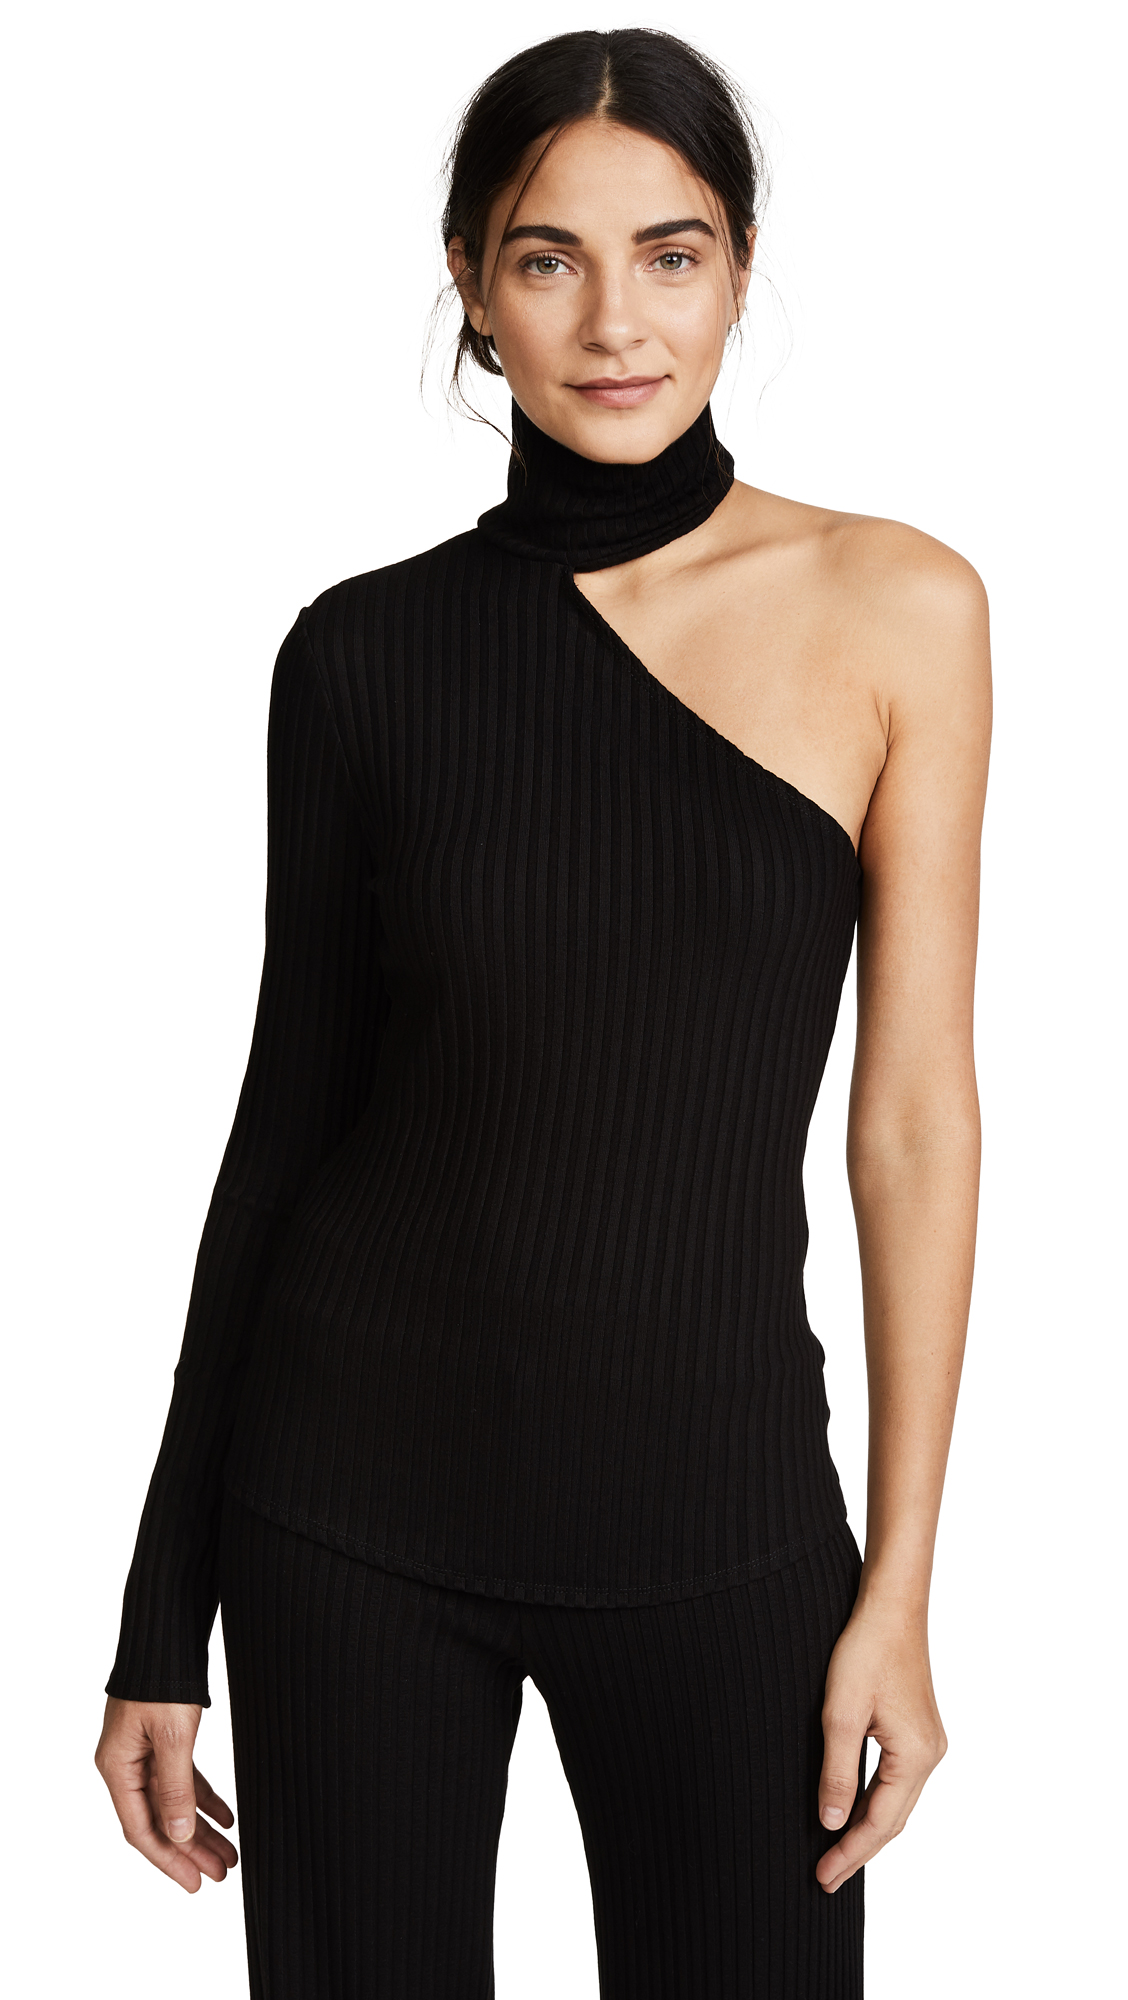 The Range Bare Arm Turtleneck In Black